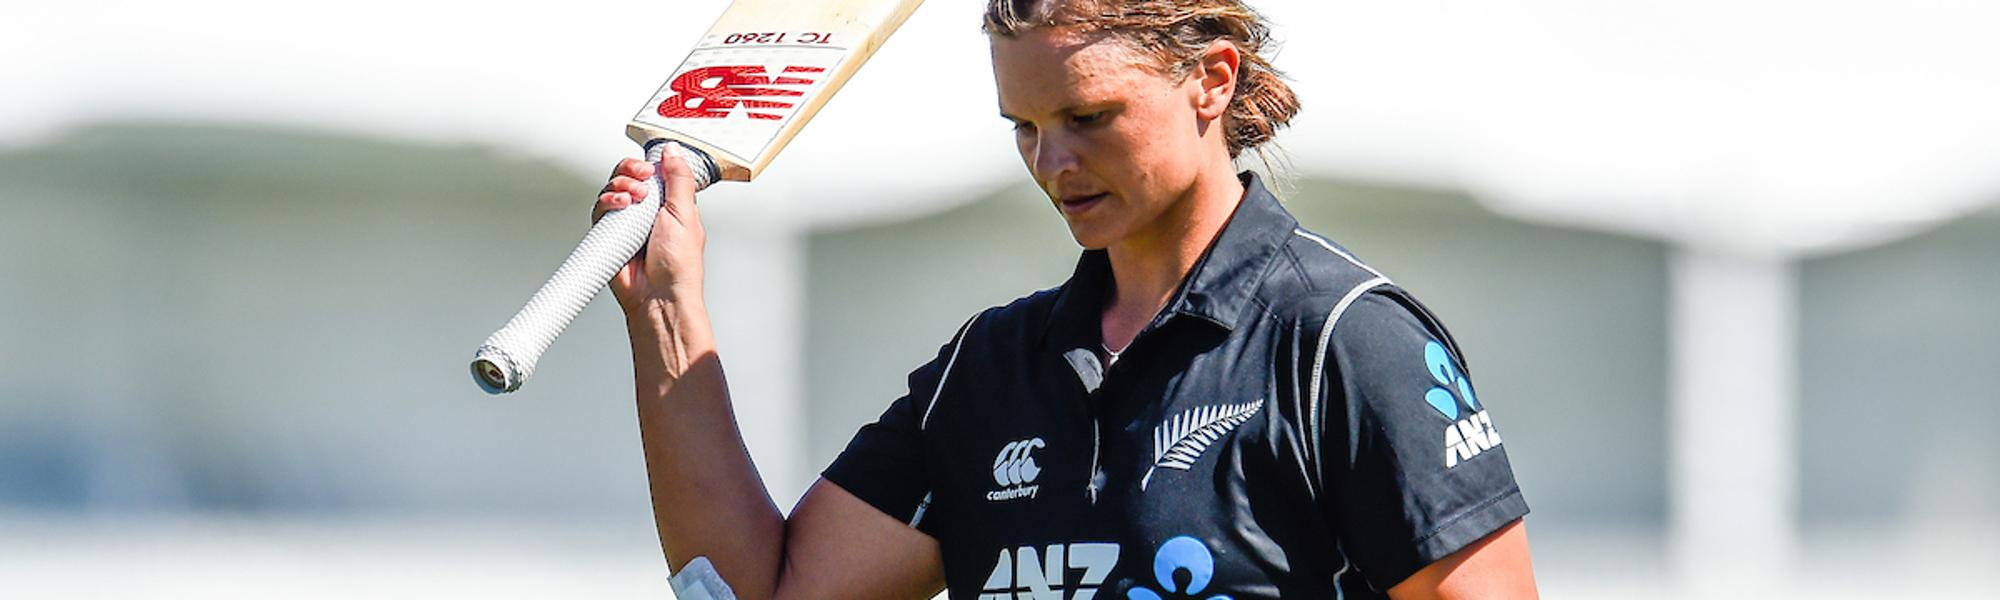 Suzie Bates scored a 97-ball 89 to help New Zealand post 310/5